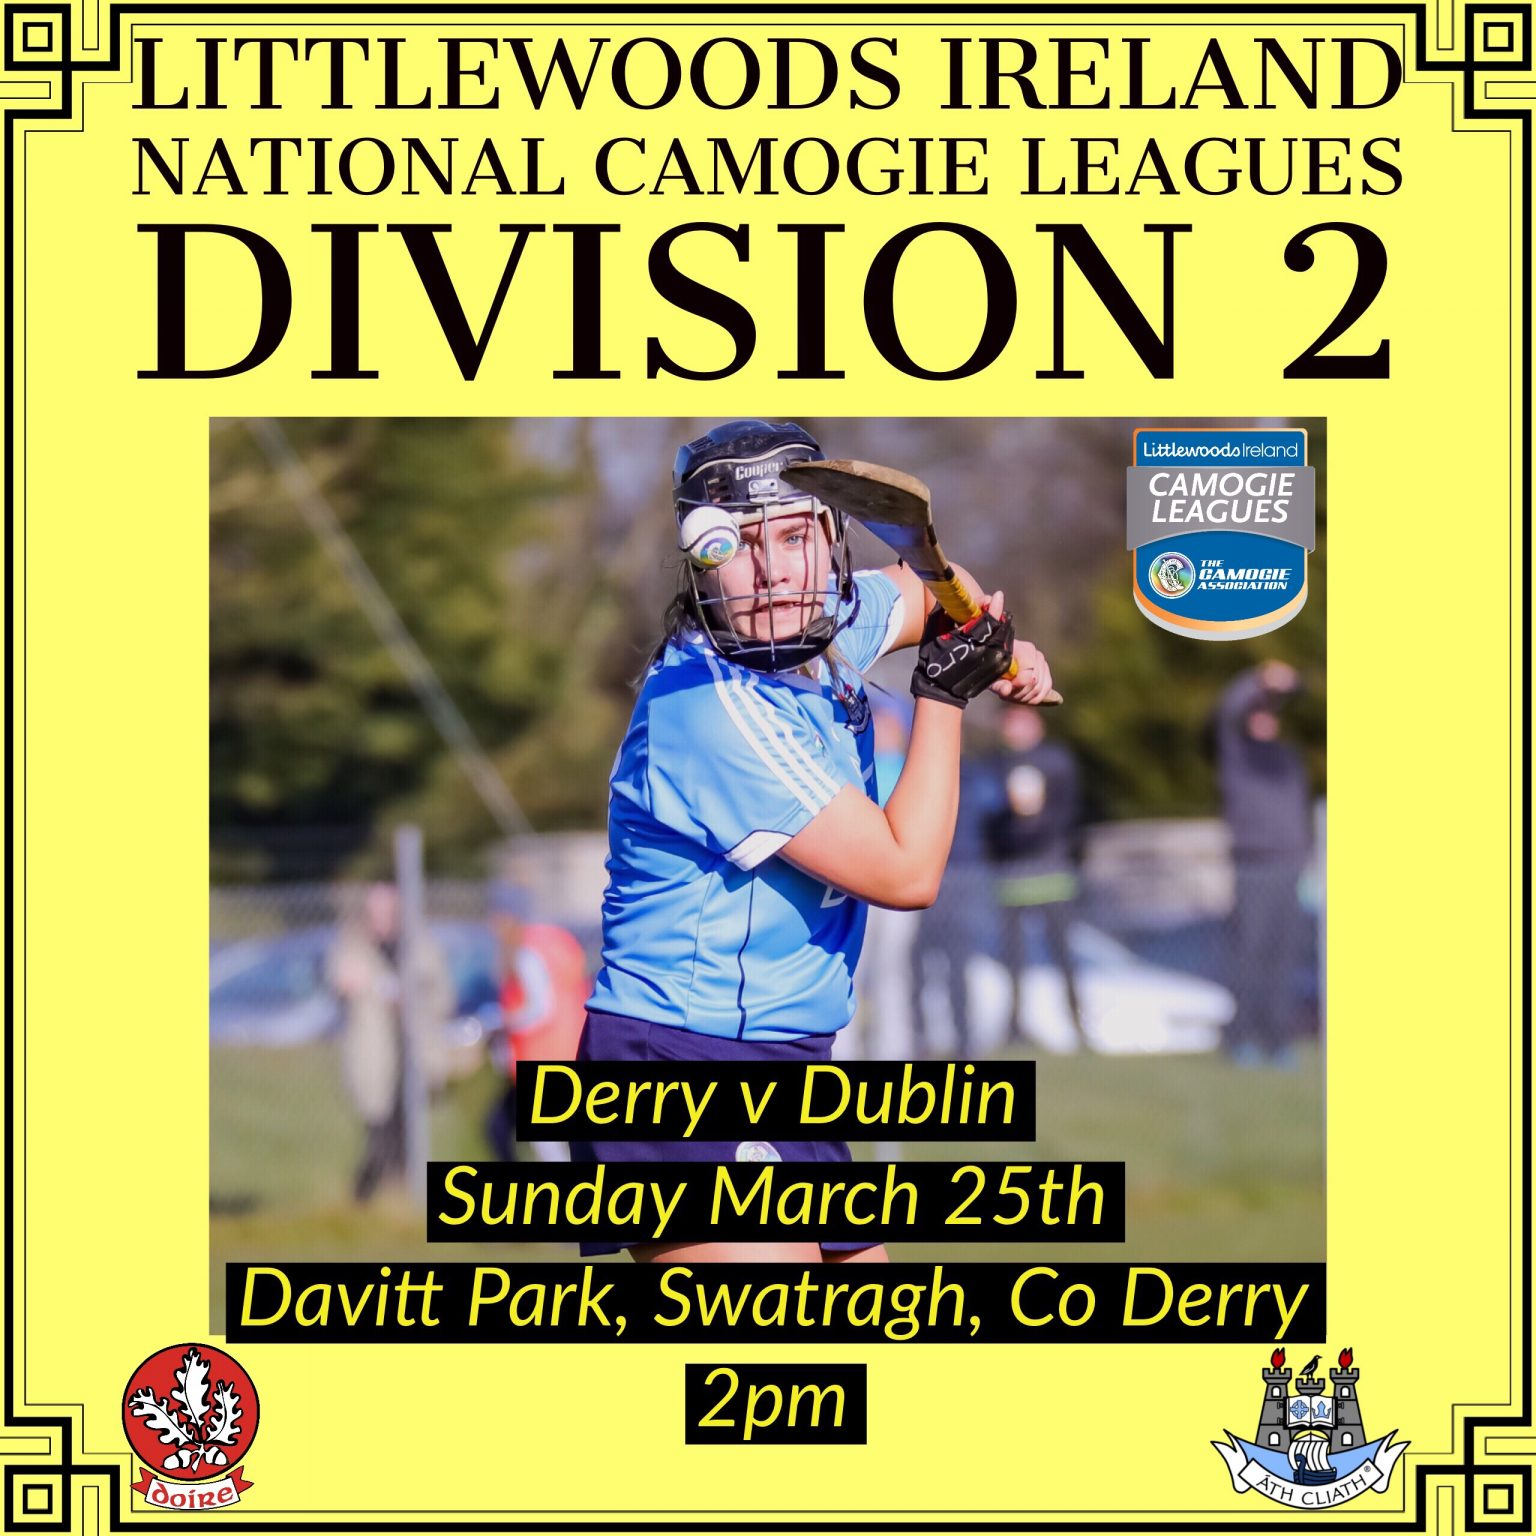 Dublin Premier Junior Camogie Team Face Derry In The Littlewoods Ireland Camogie Leagues